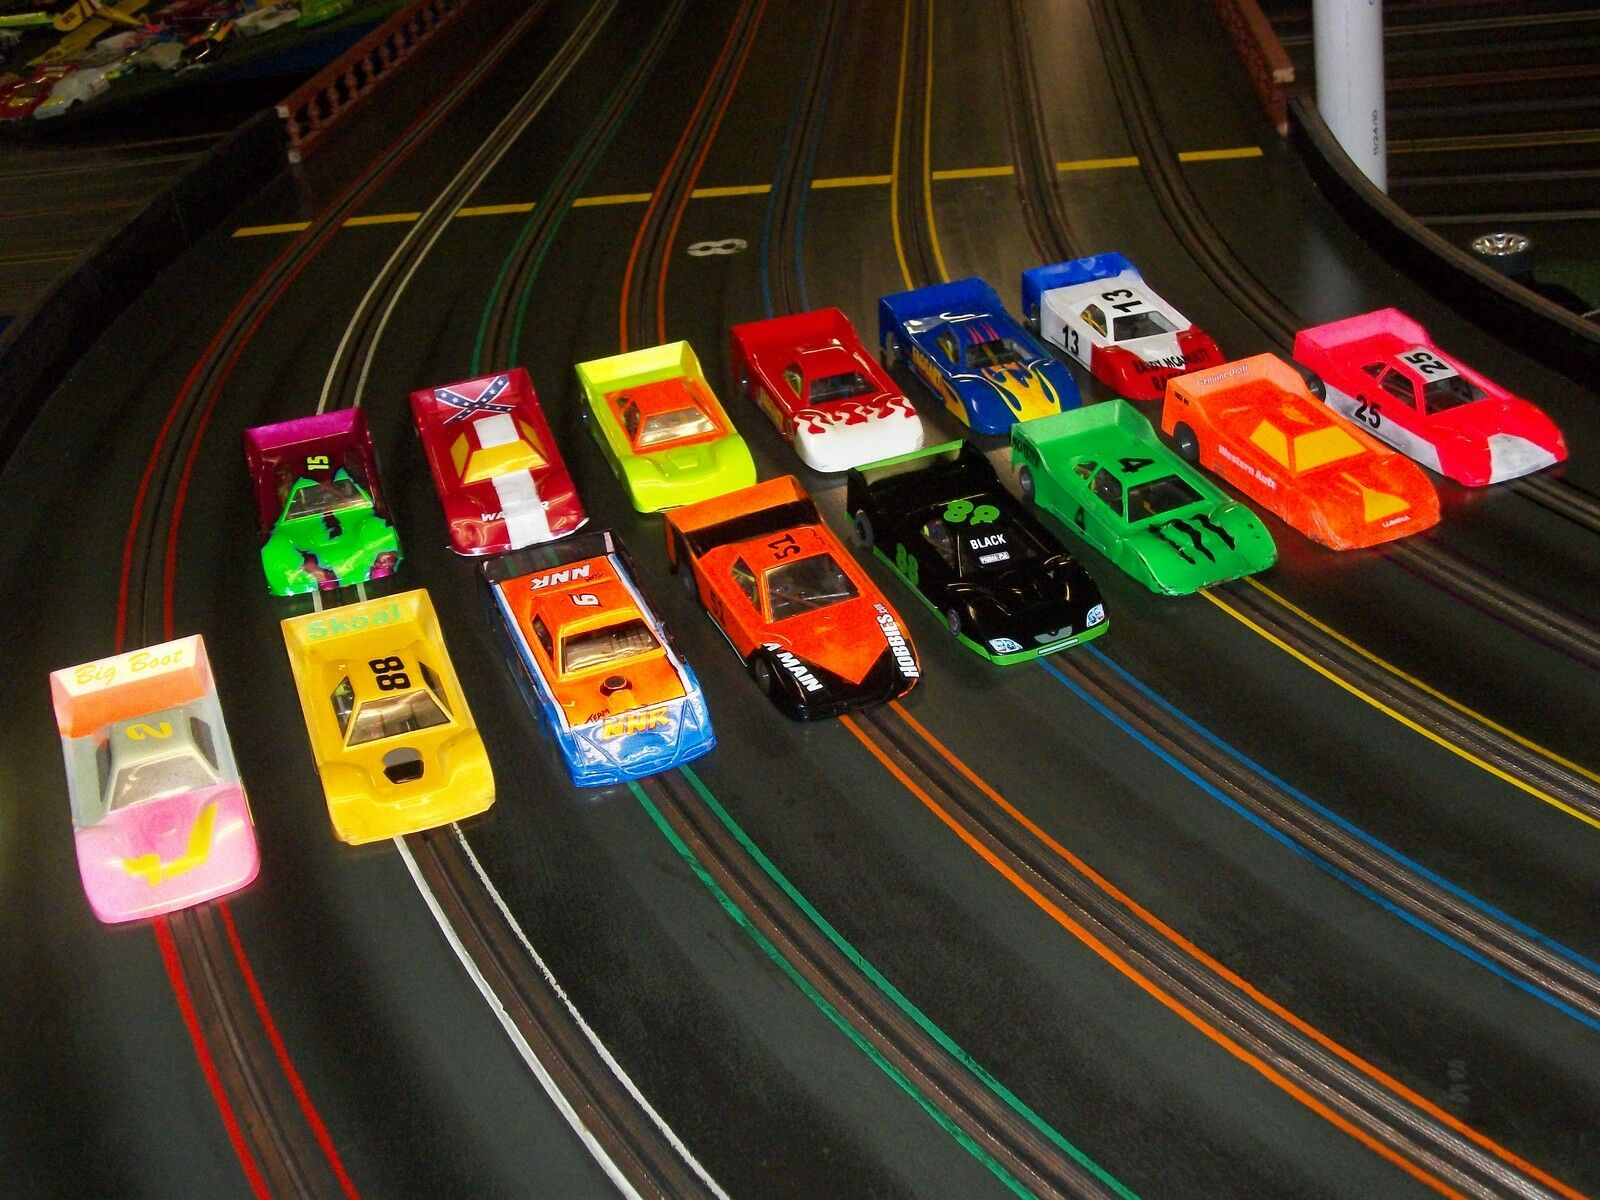 theslotcartrack&hobbies